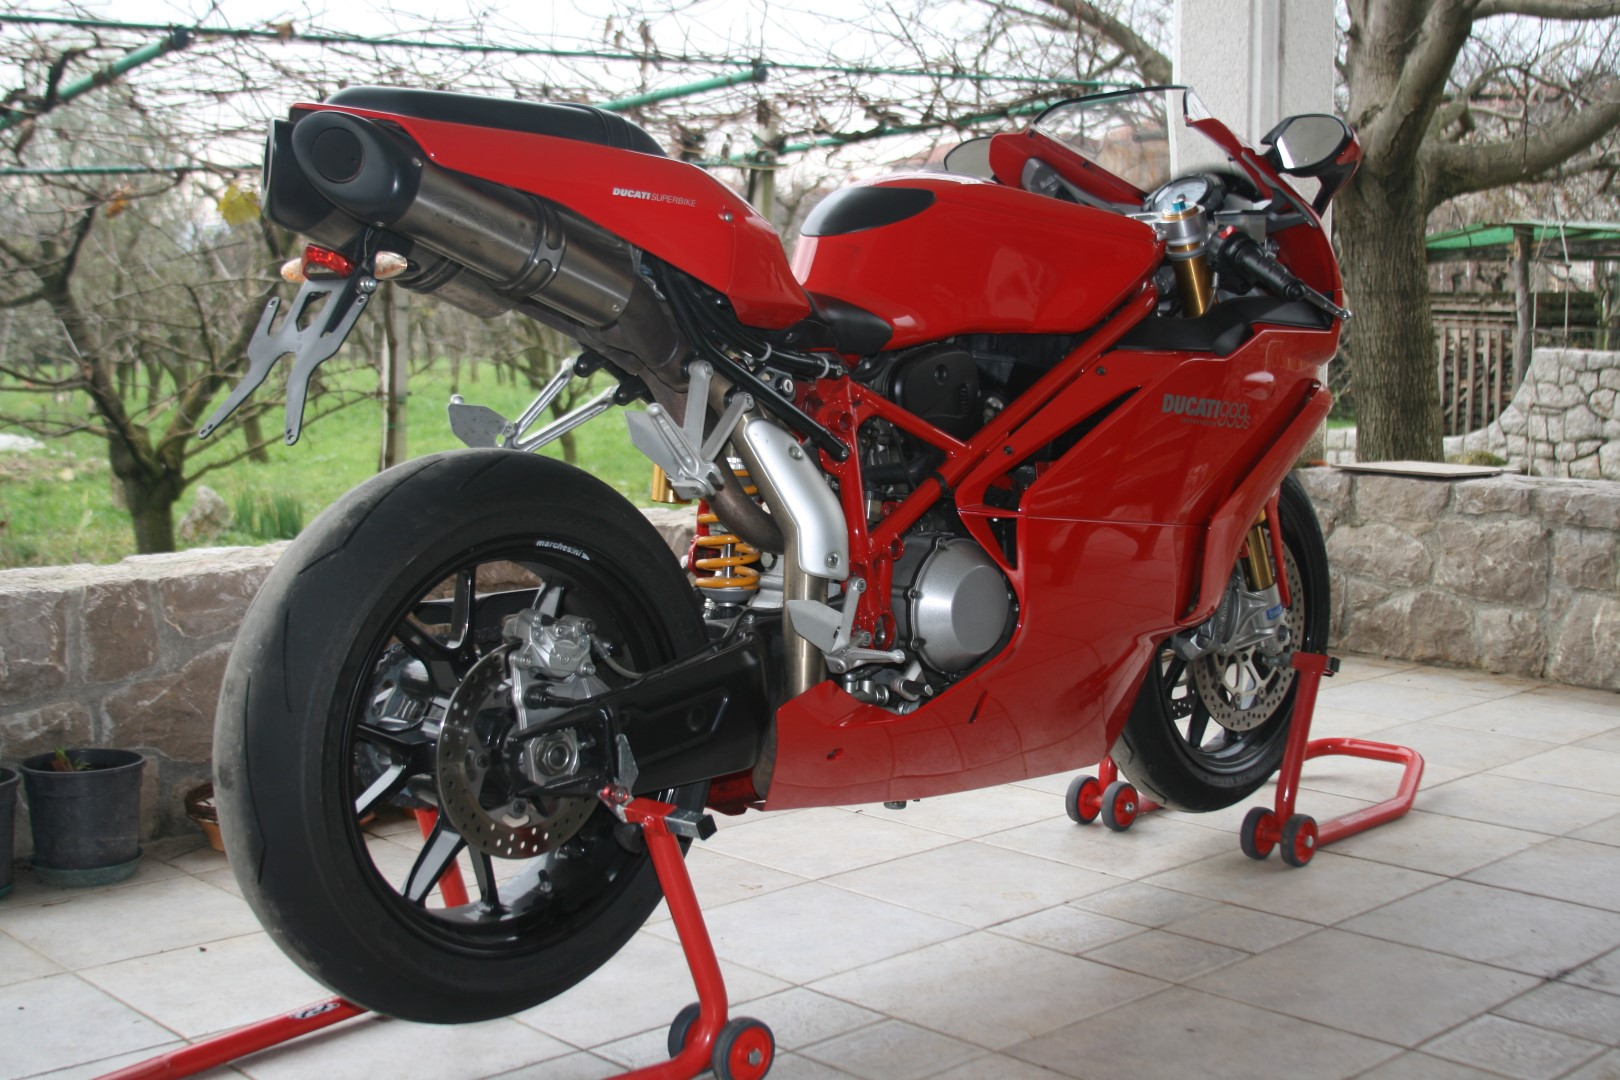 hight resolution of ducati 999 tail light wiring wiring diagram loc ducati 749 999 tail light wiring ducati ms